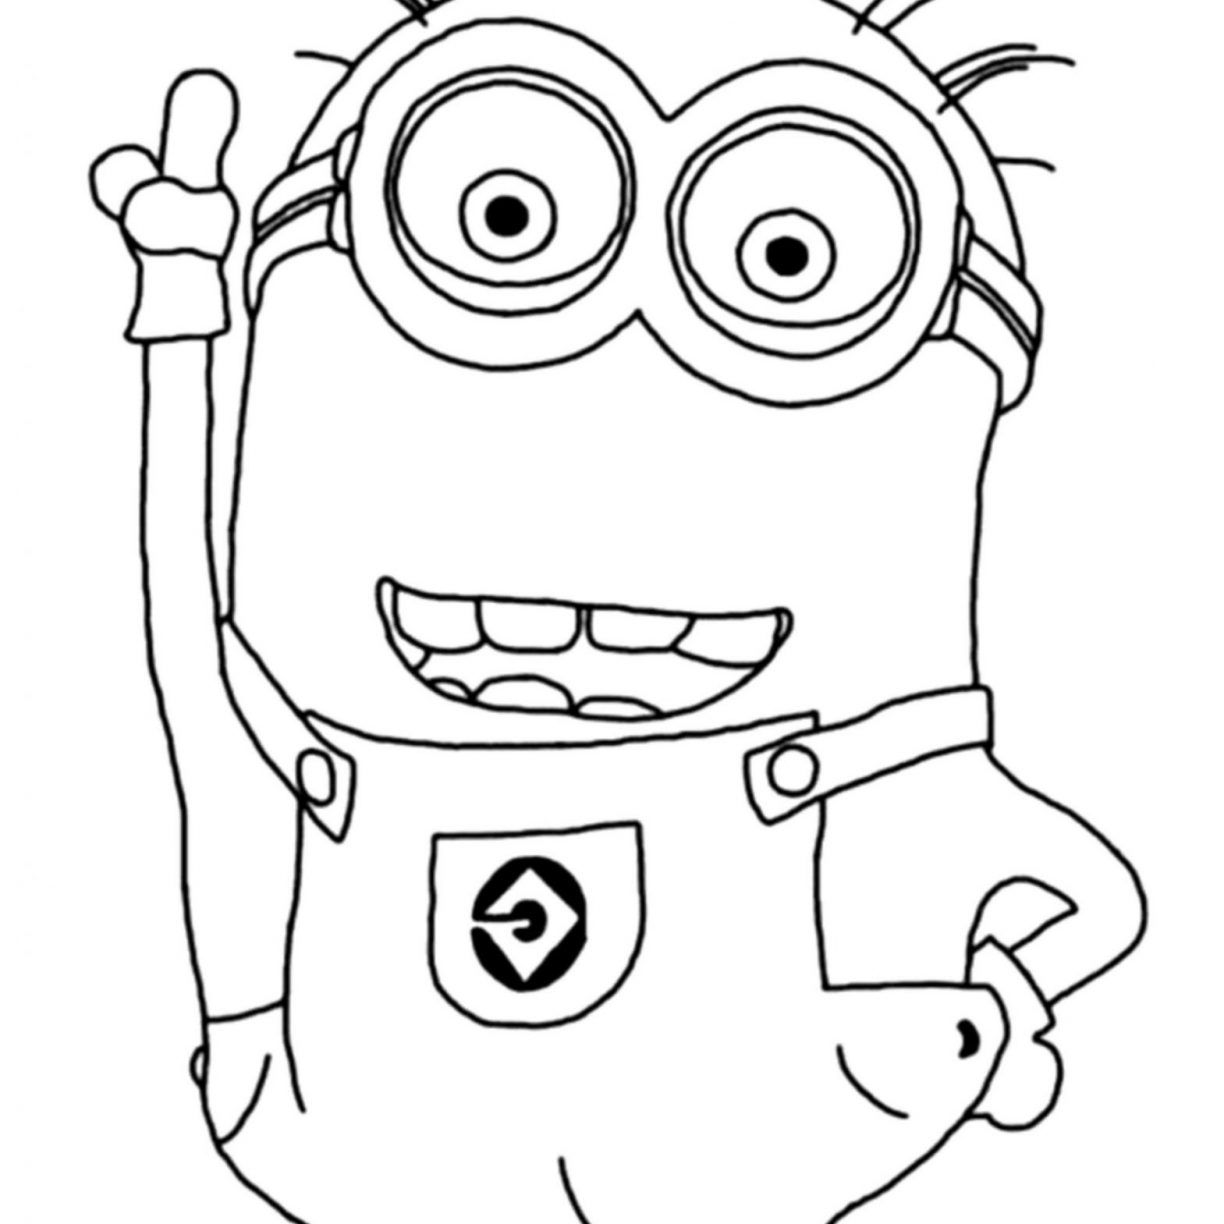 1224x1224 Despicable Me Minions Coloring Pages Printable For Free General